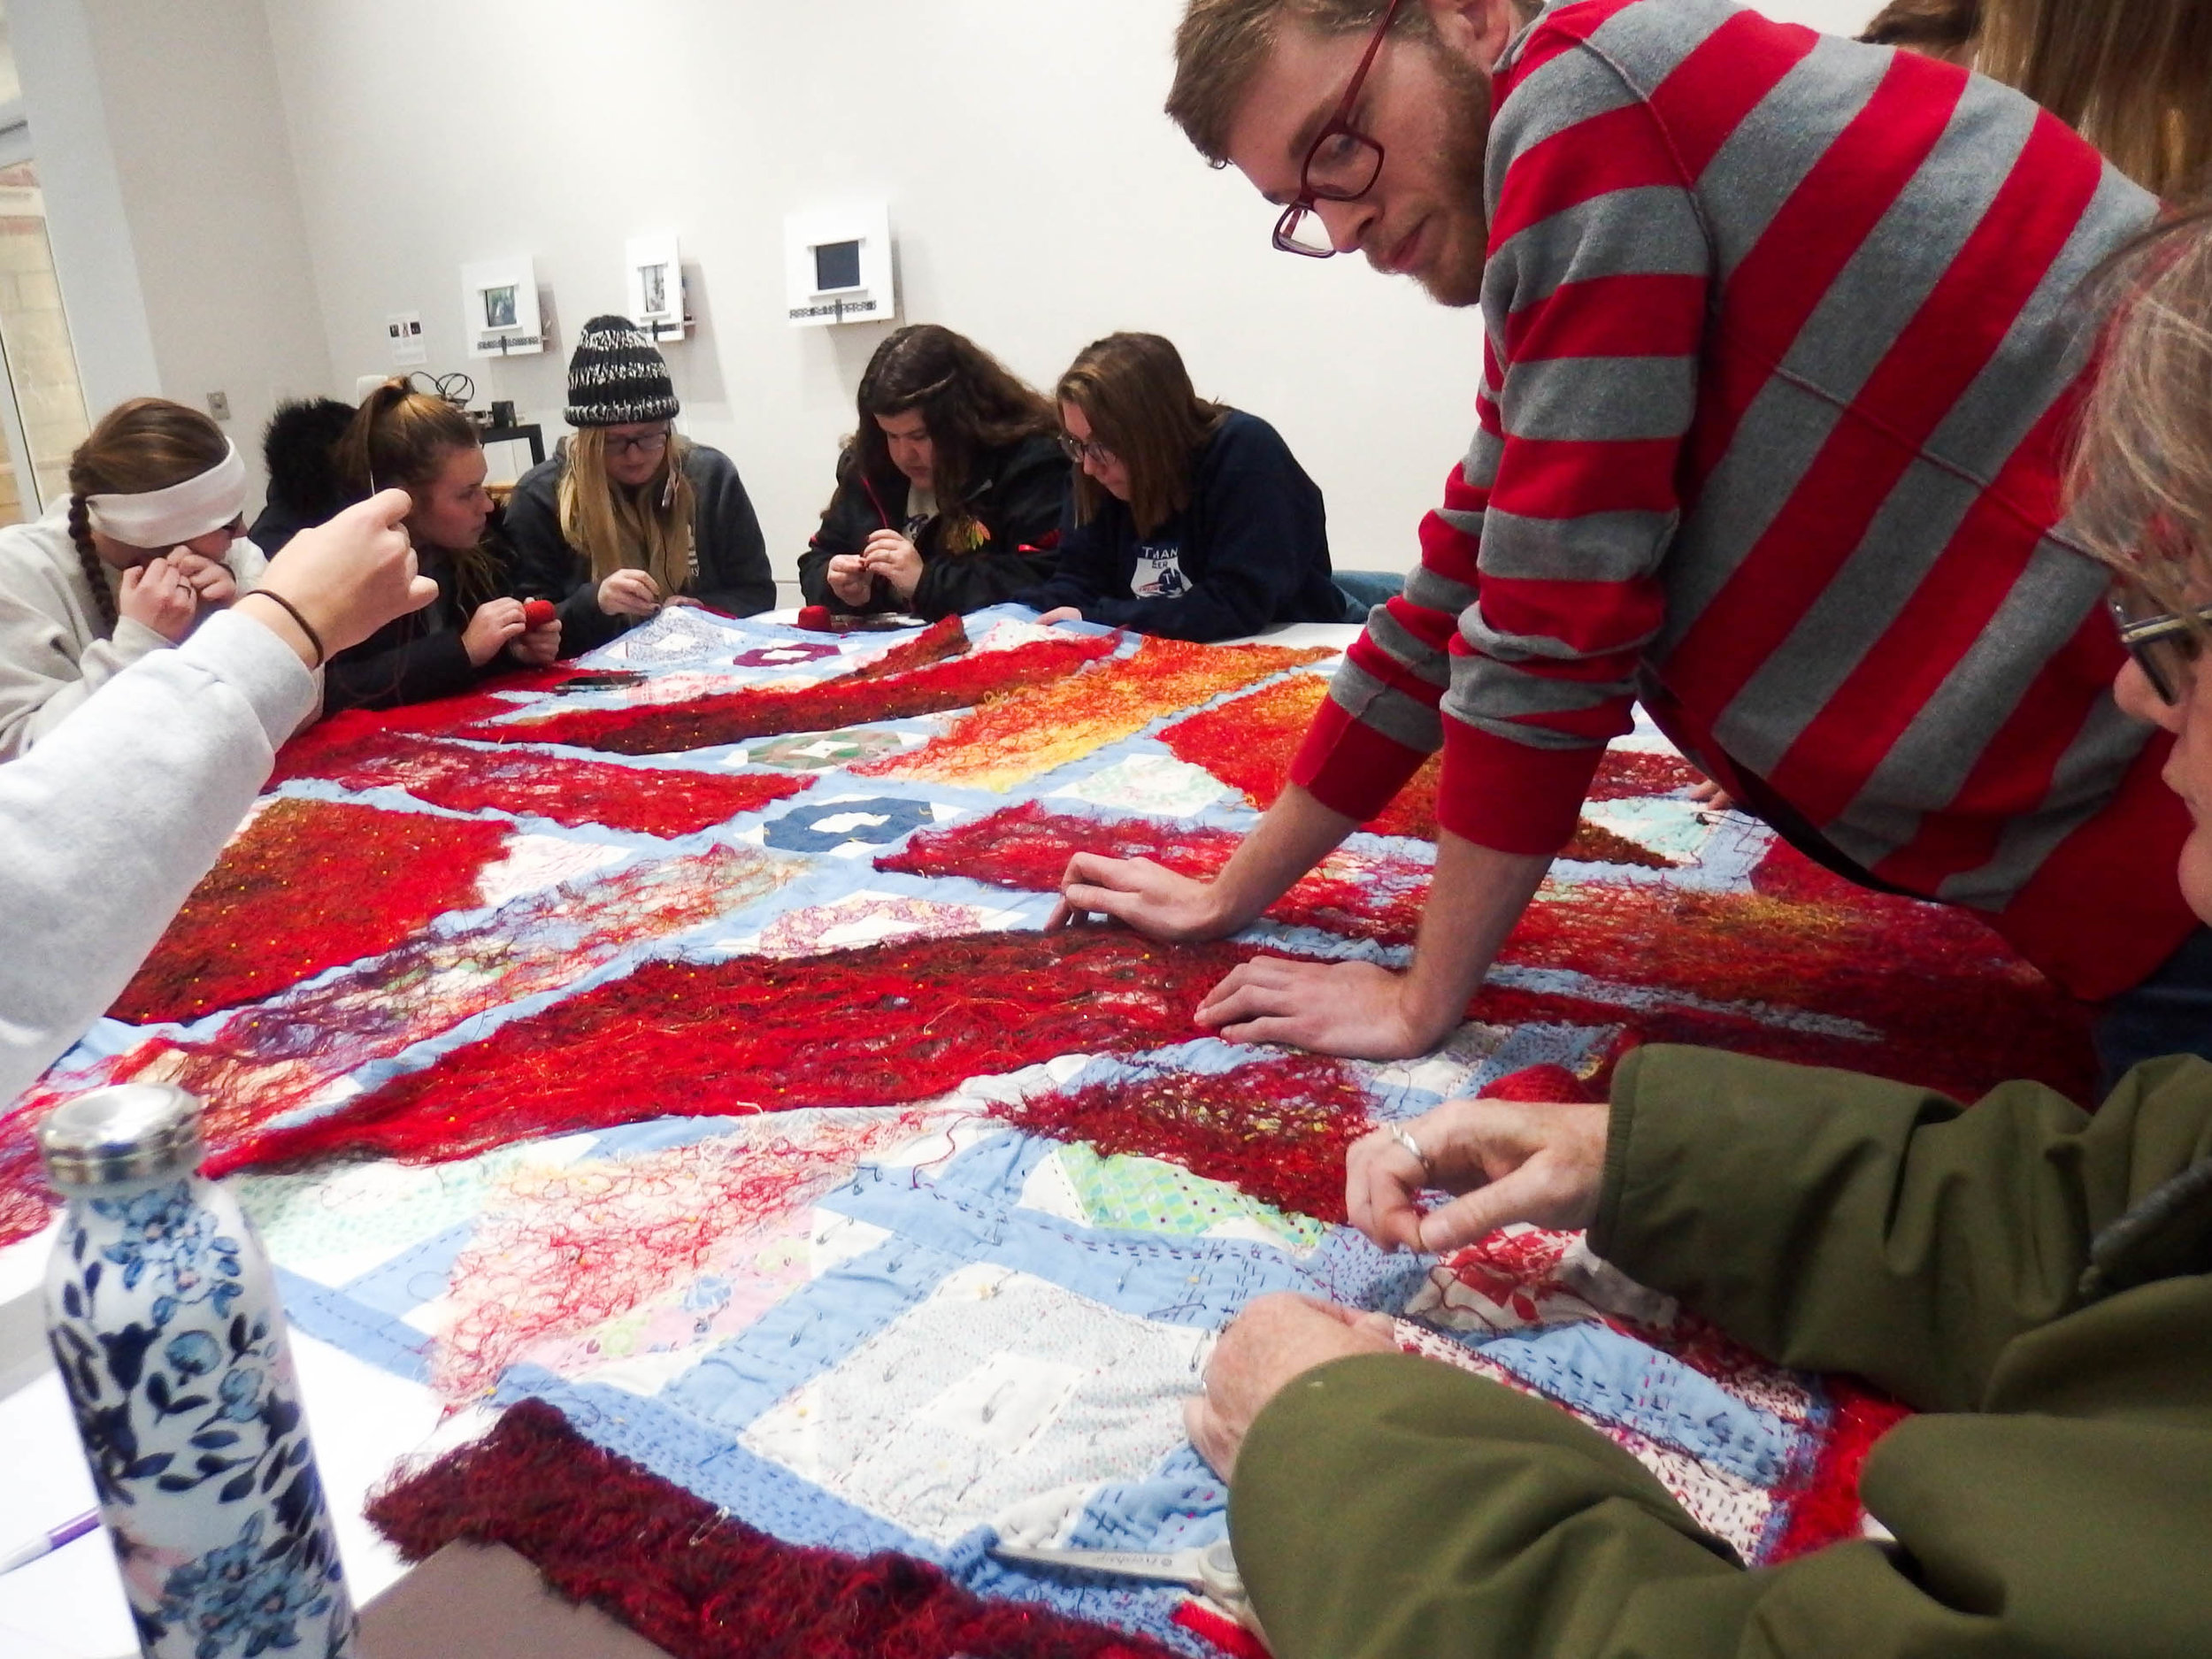 Get Involved - Want to attend a workshop? Host a mending session?Contribute financially to The Collective Mending Sessions? Contact us. Get involved.